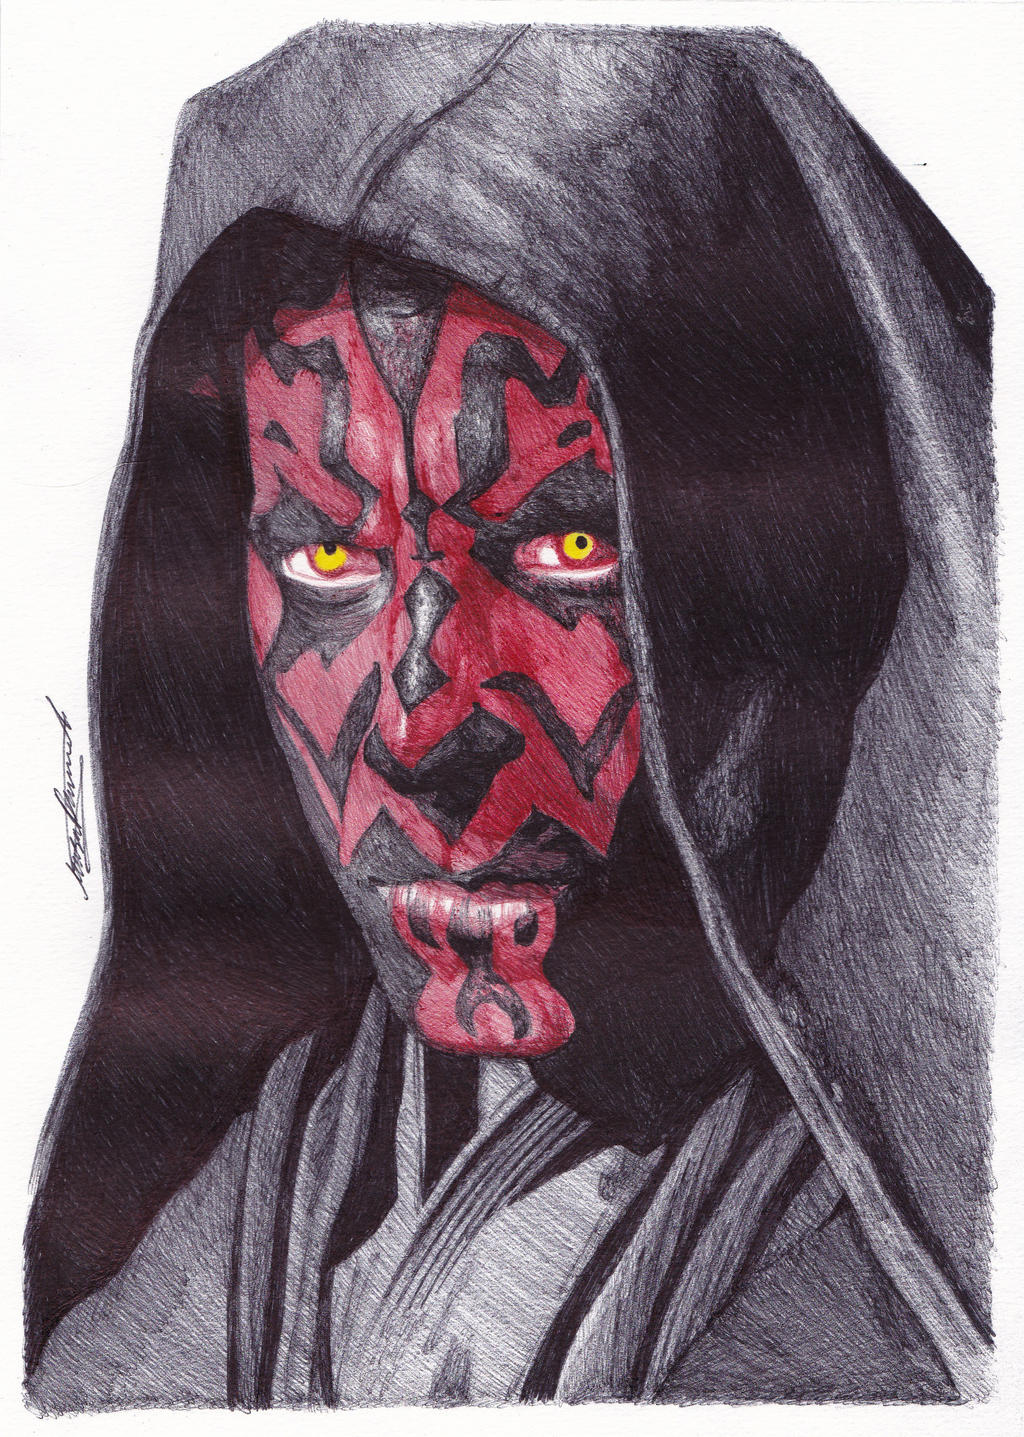 Darth Maul Ballpoint Pen Drawing. by demoose21 on DeviantArt